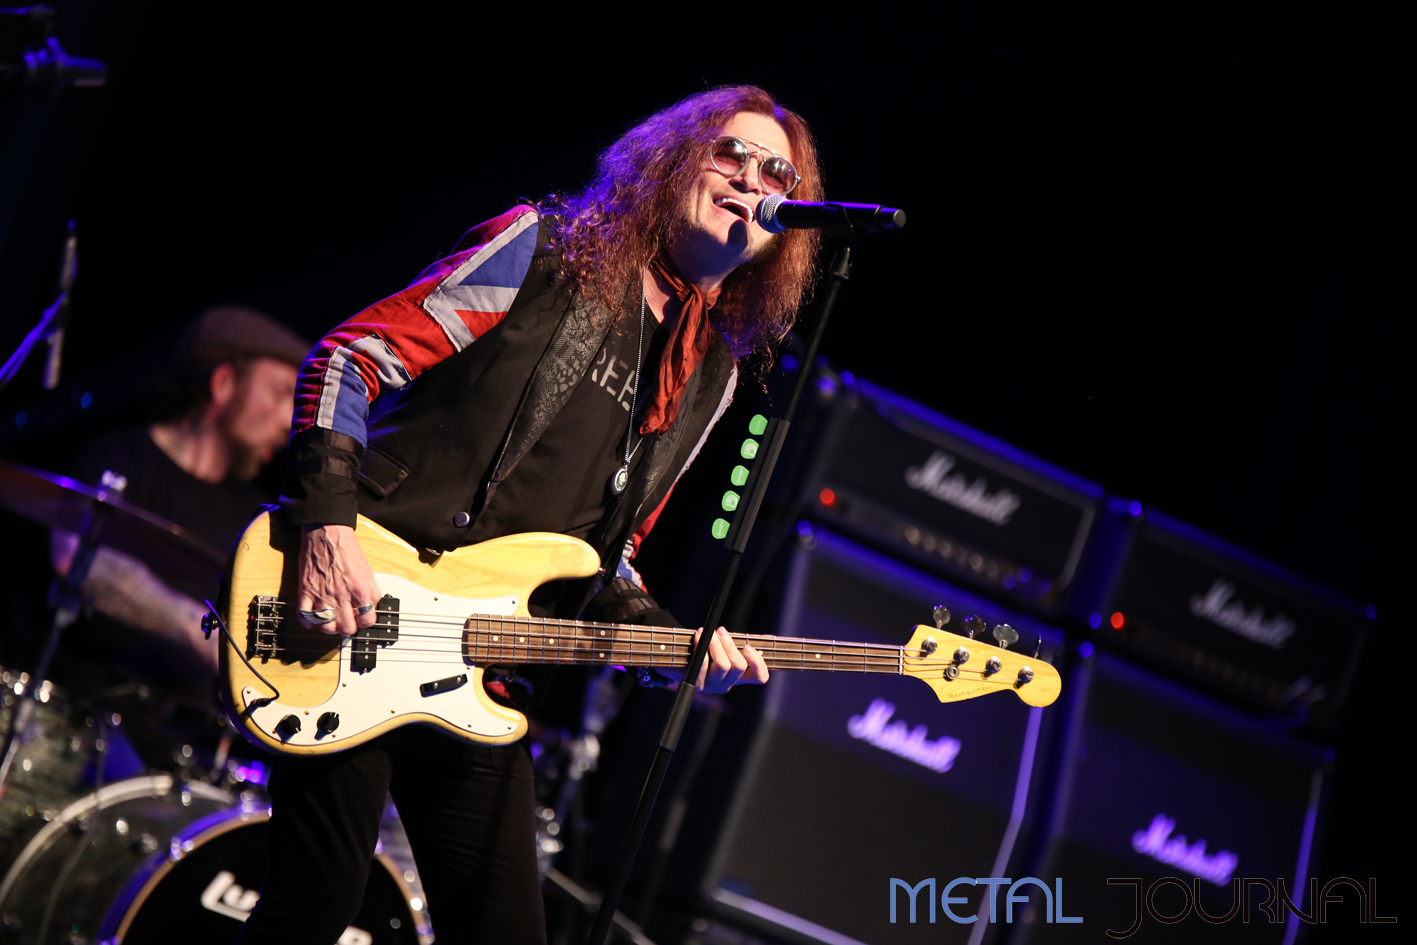 glenn hughes - metal journal pic 12